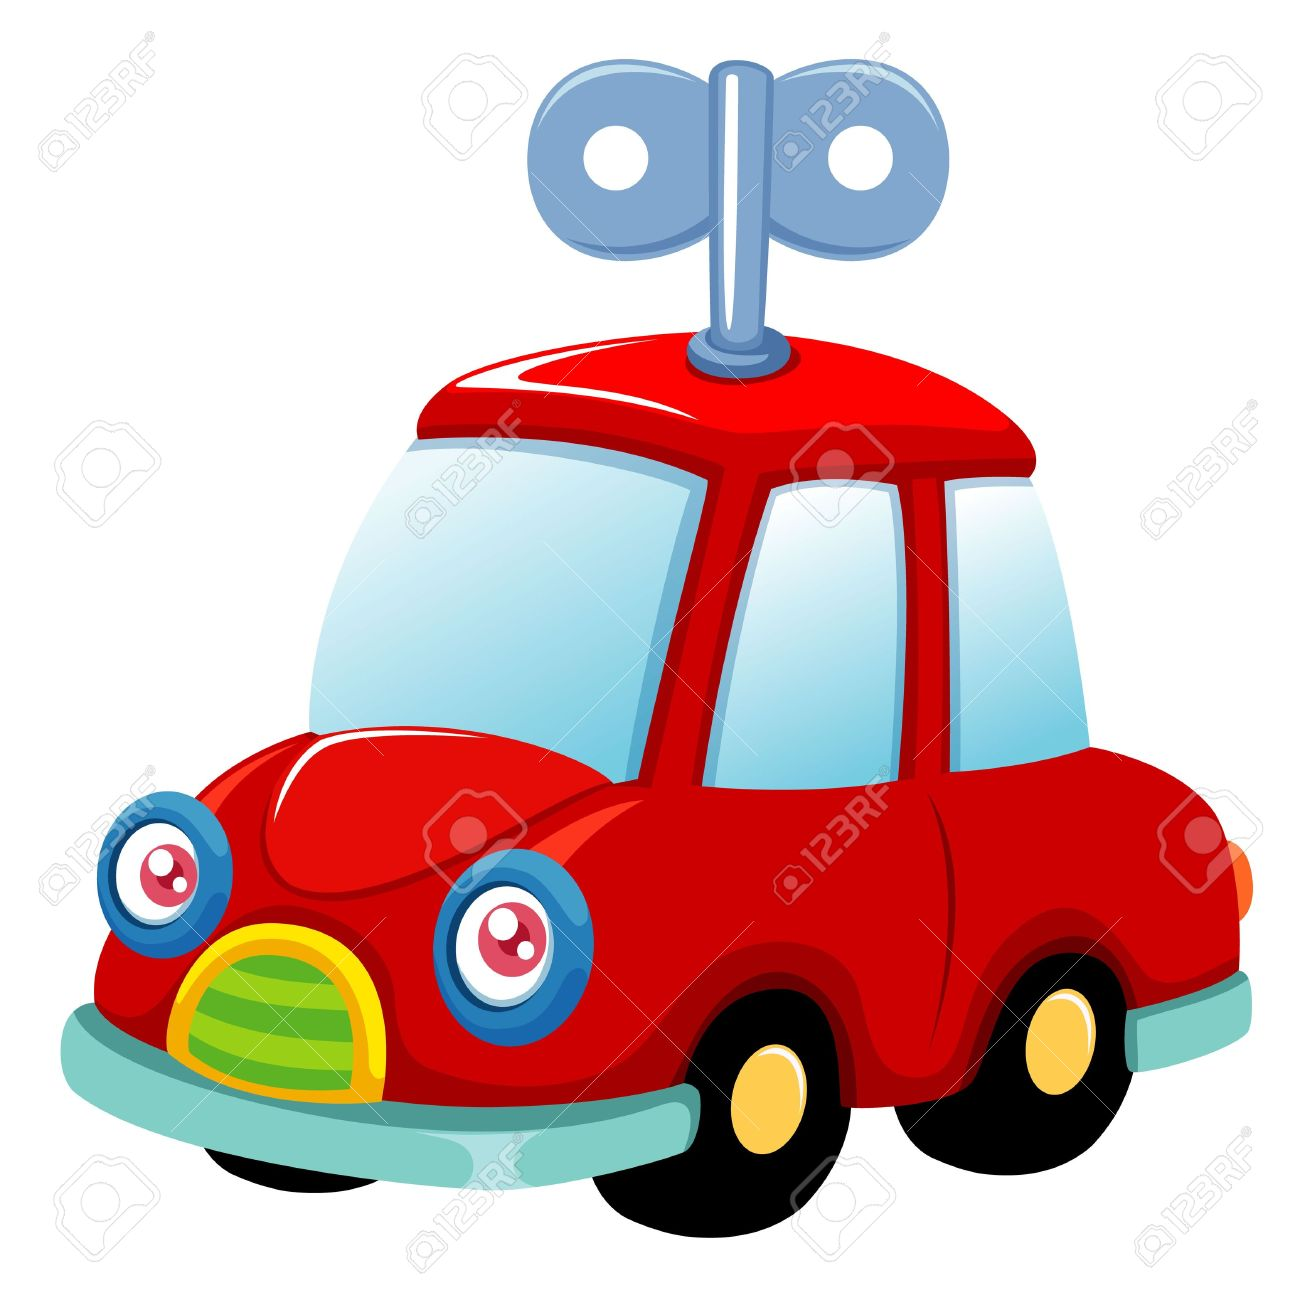 Toy Car Clip Art : Toy car clipart clipground